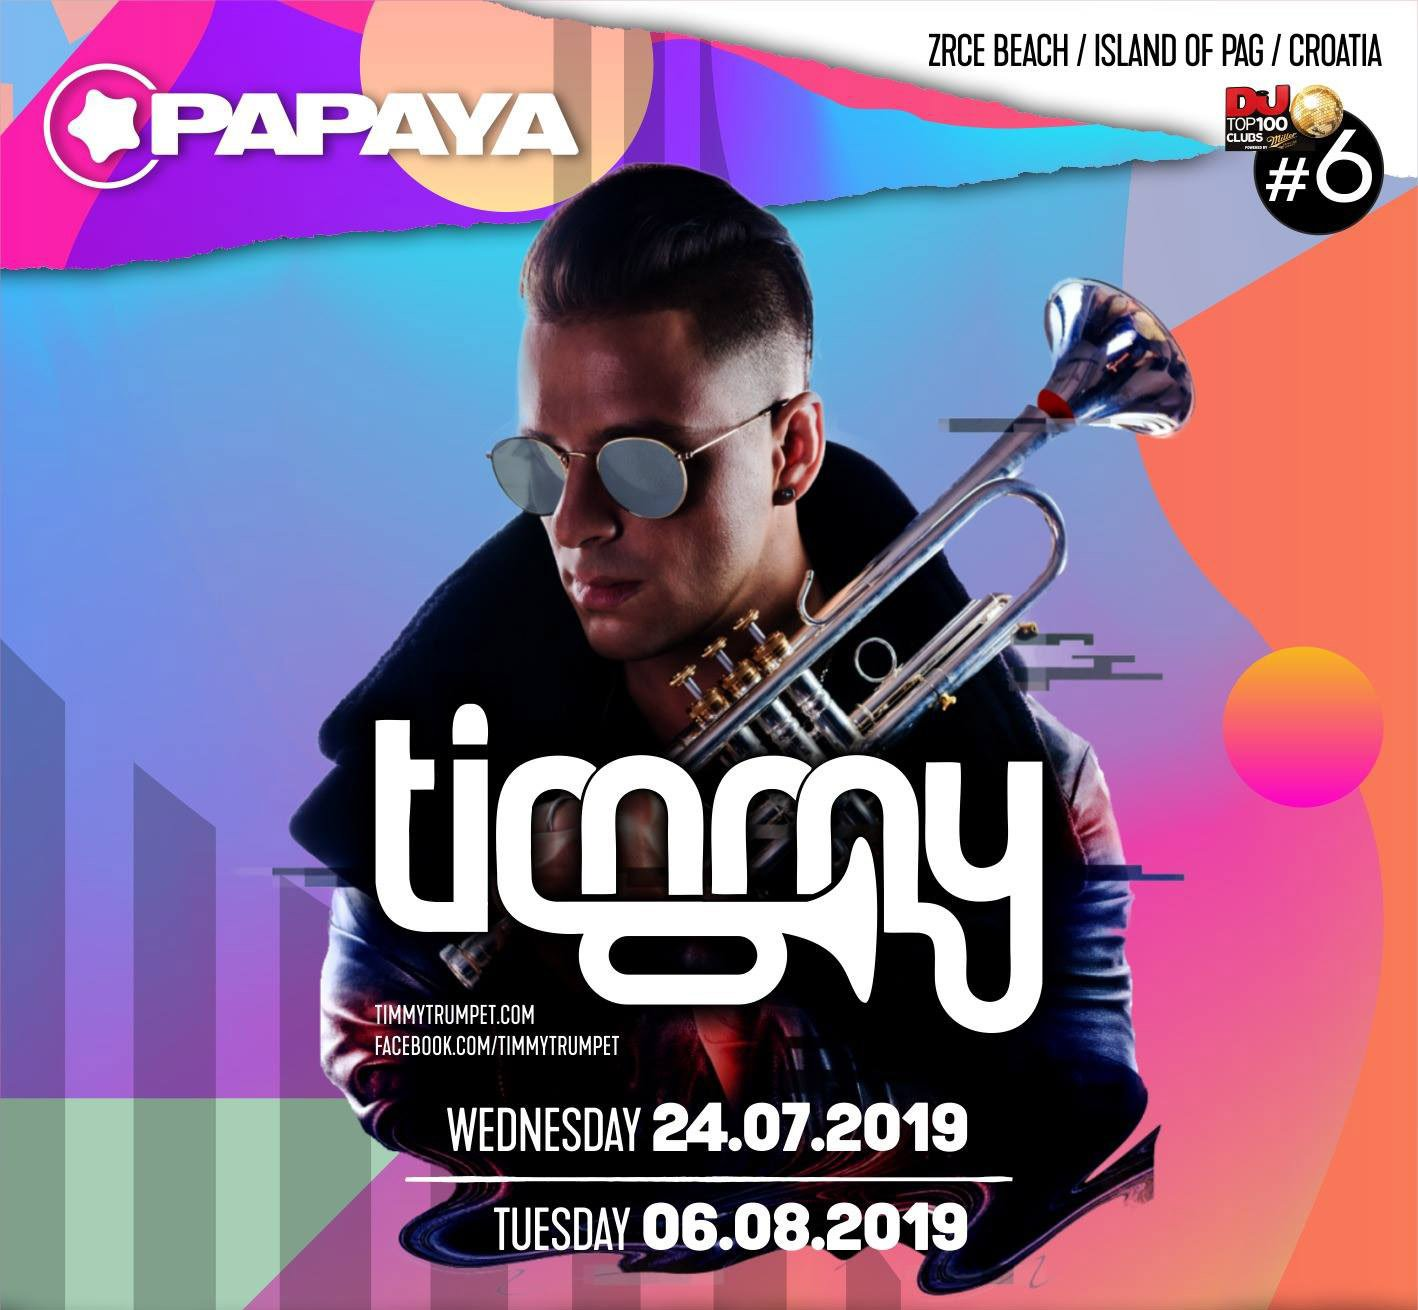 Timmy Trumpet 24 JUL 2019 Papaya club, Zrce beach, Island of Pag